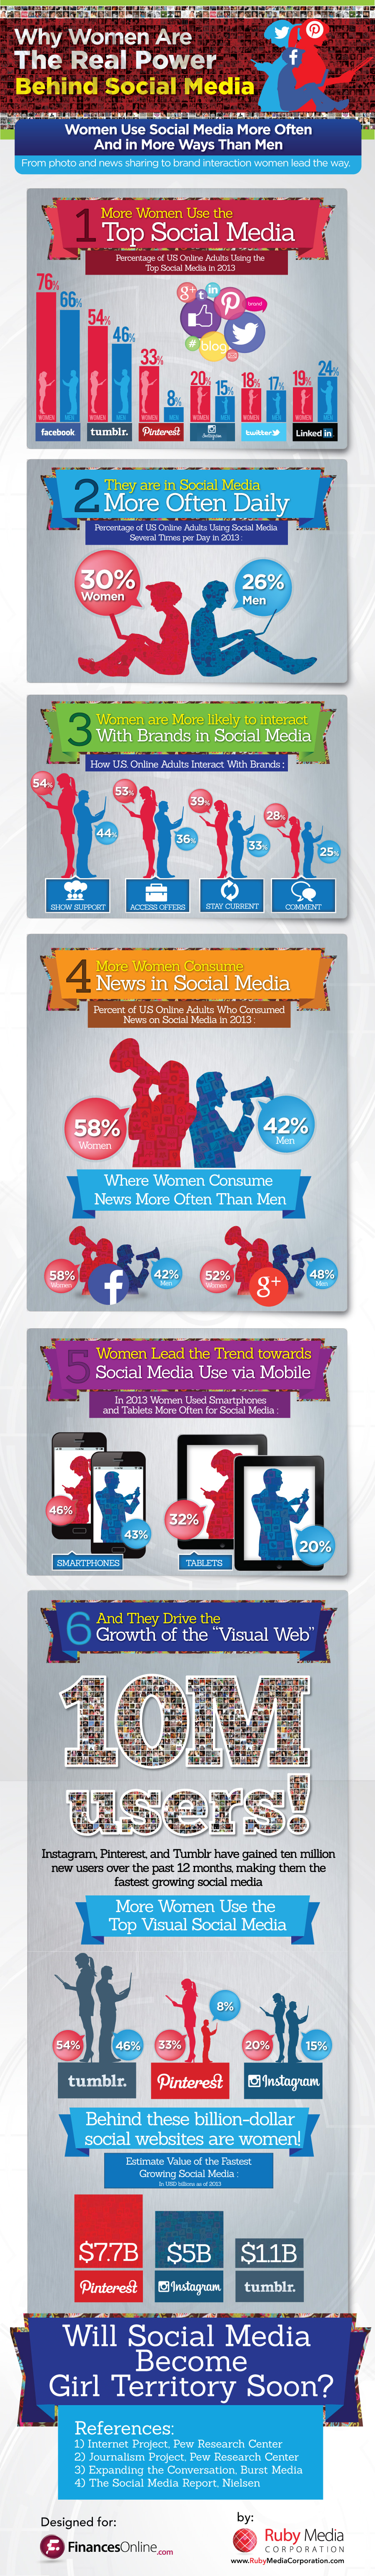 social media infographic Social Media Trends: Women Lead [Infographic]